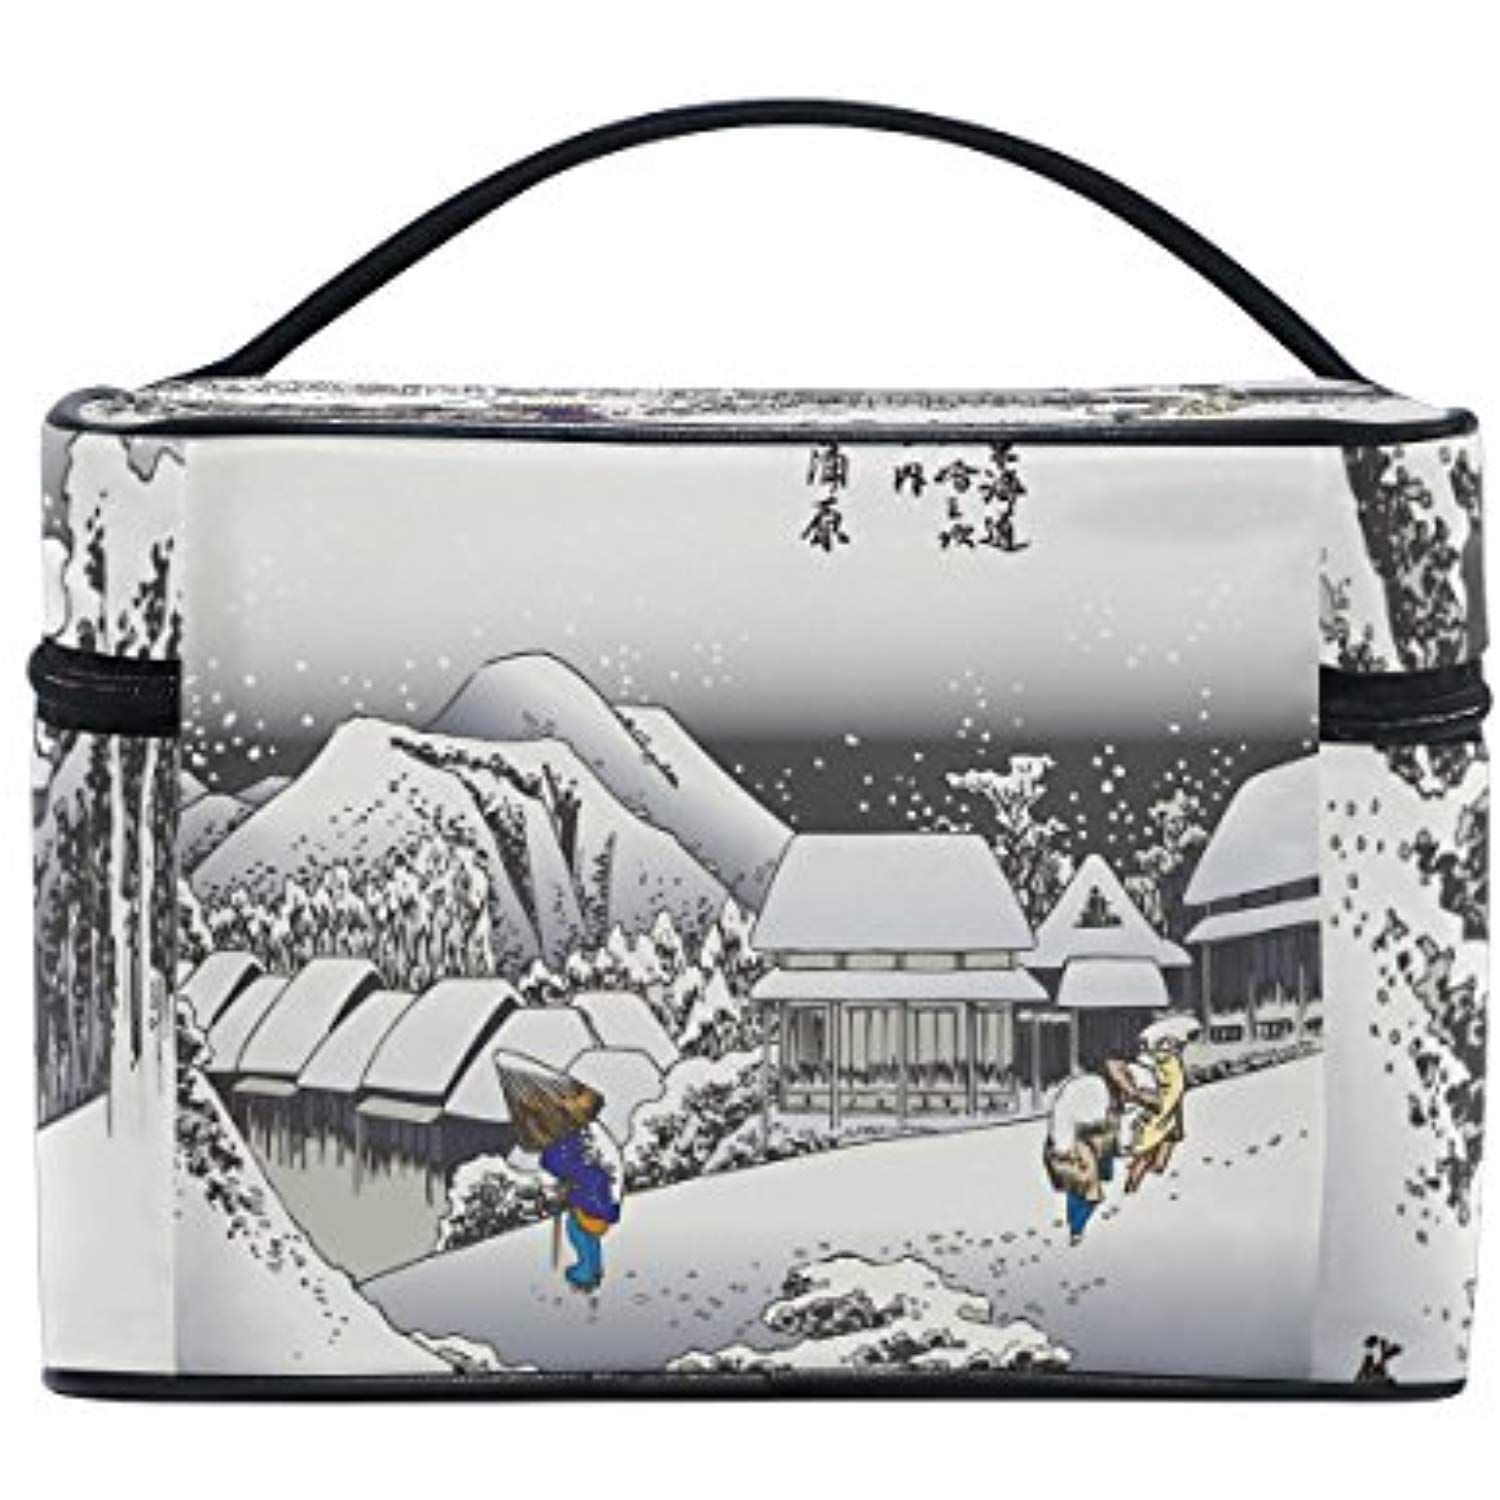 45491ed861 Ukiyoe Ukiyo-E Print Japanese Art Travel Makeup Toiletry Organizer Case  Cosmetic Bag   Visit the image link more details. (This is an affiliate  link)   ...